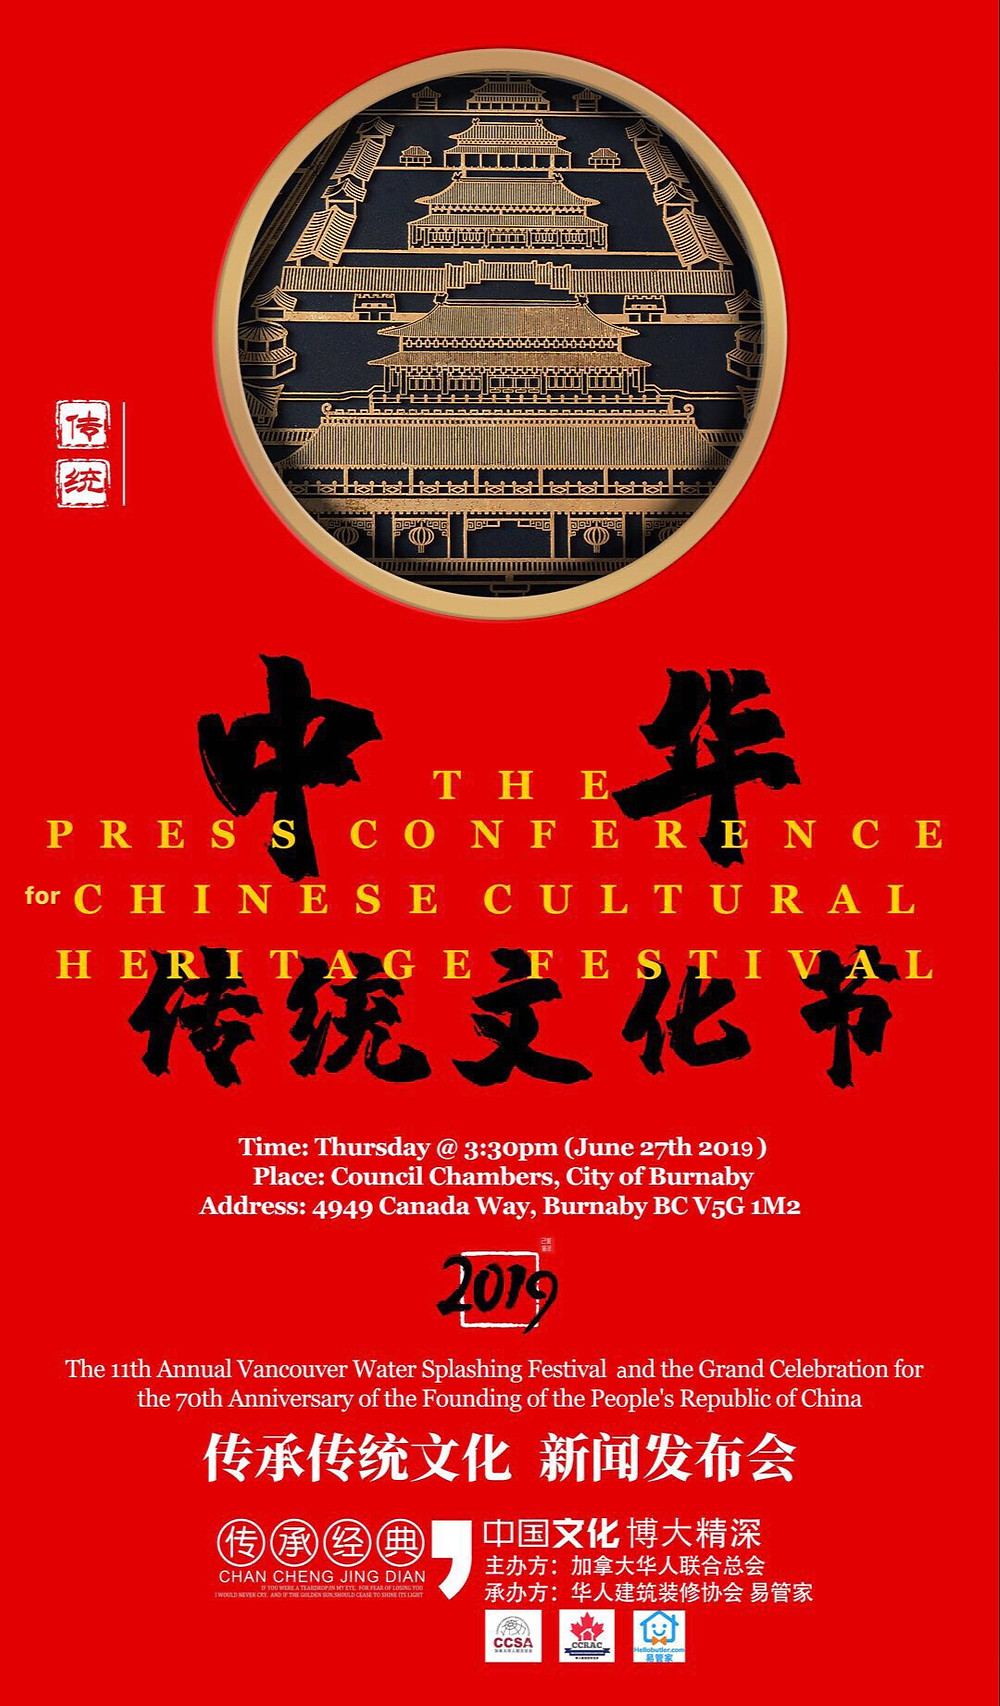 Press Conference Poster for Chinese Cultural Heritage Festival